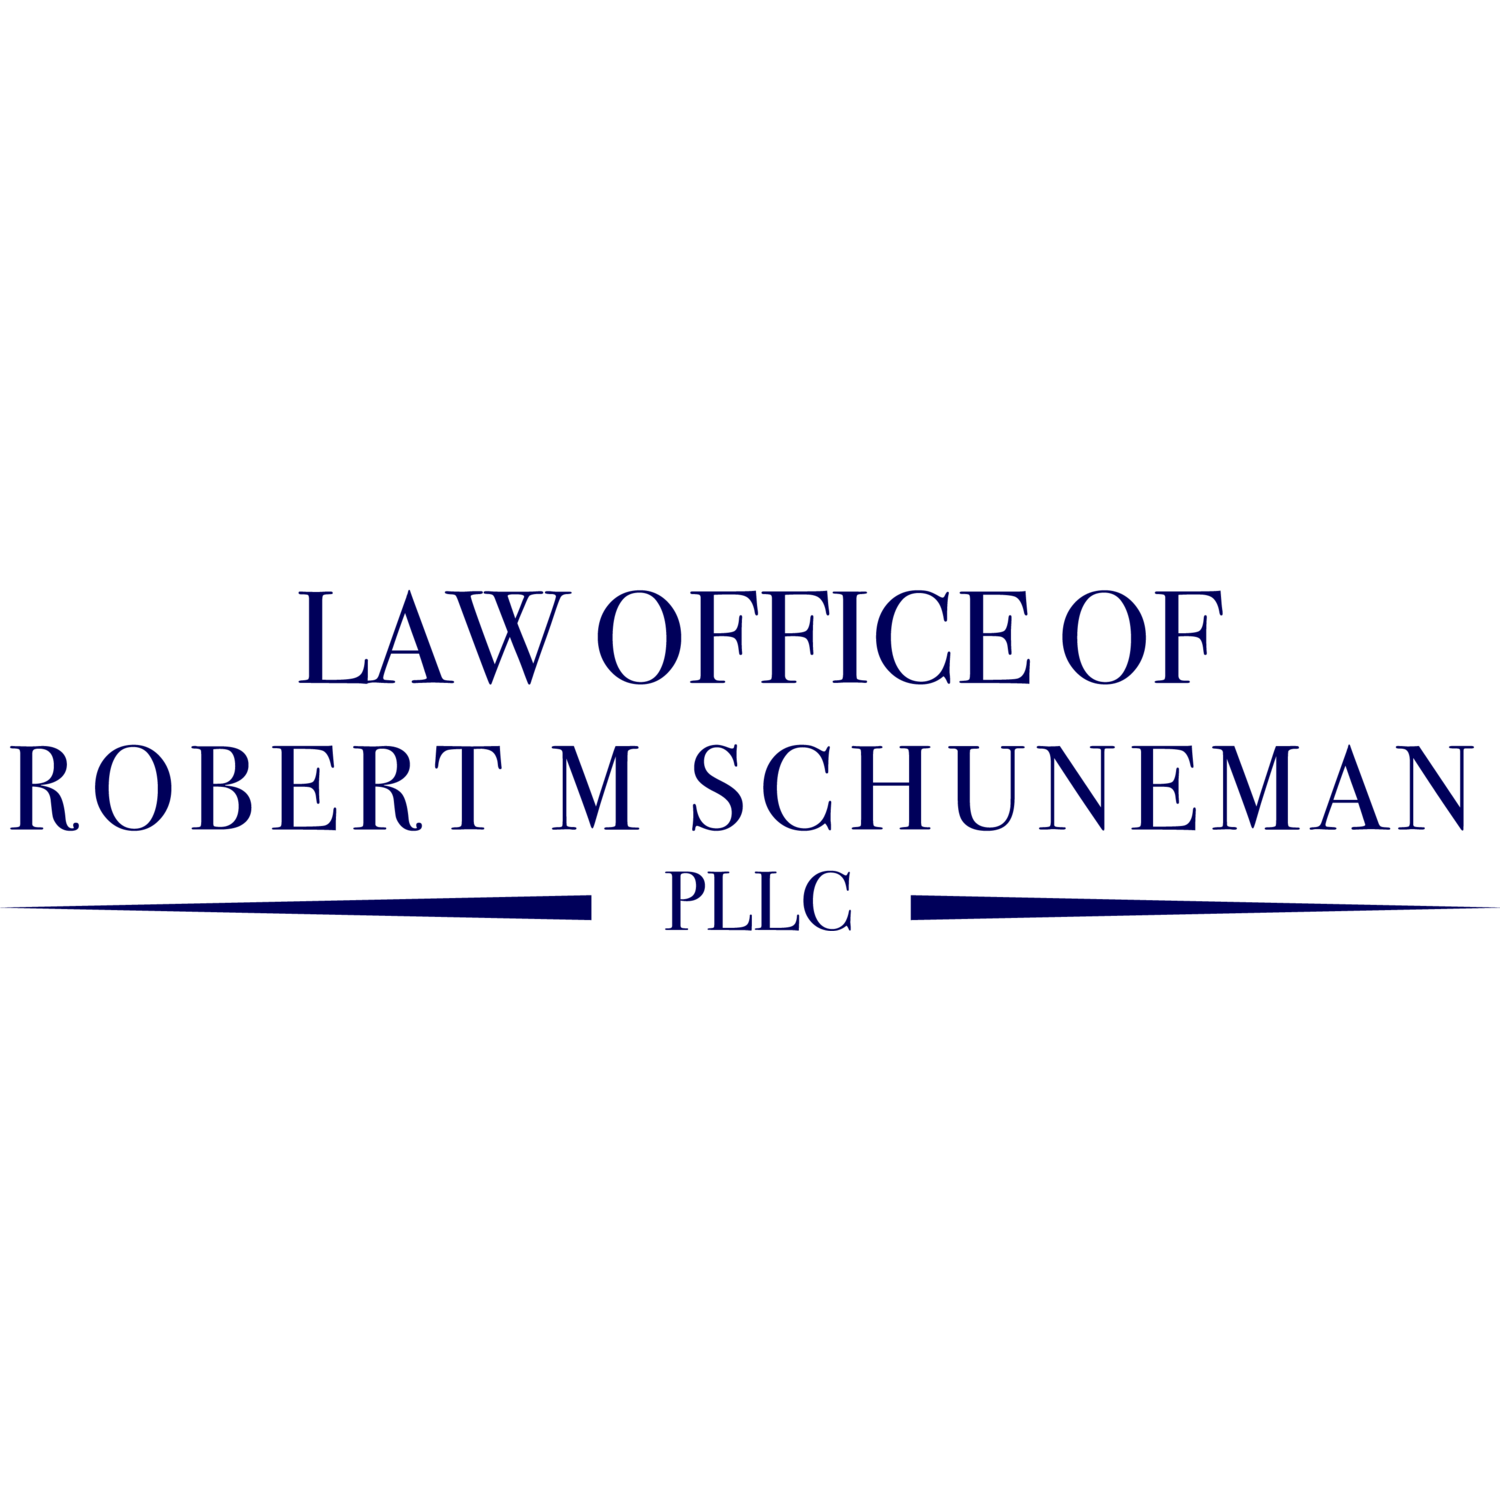 Law Office Of Robert M. Schuneman PLLC - Woodbury, MN 55125 - (651)538-1518 | ShowMeLocal.com